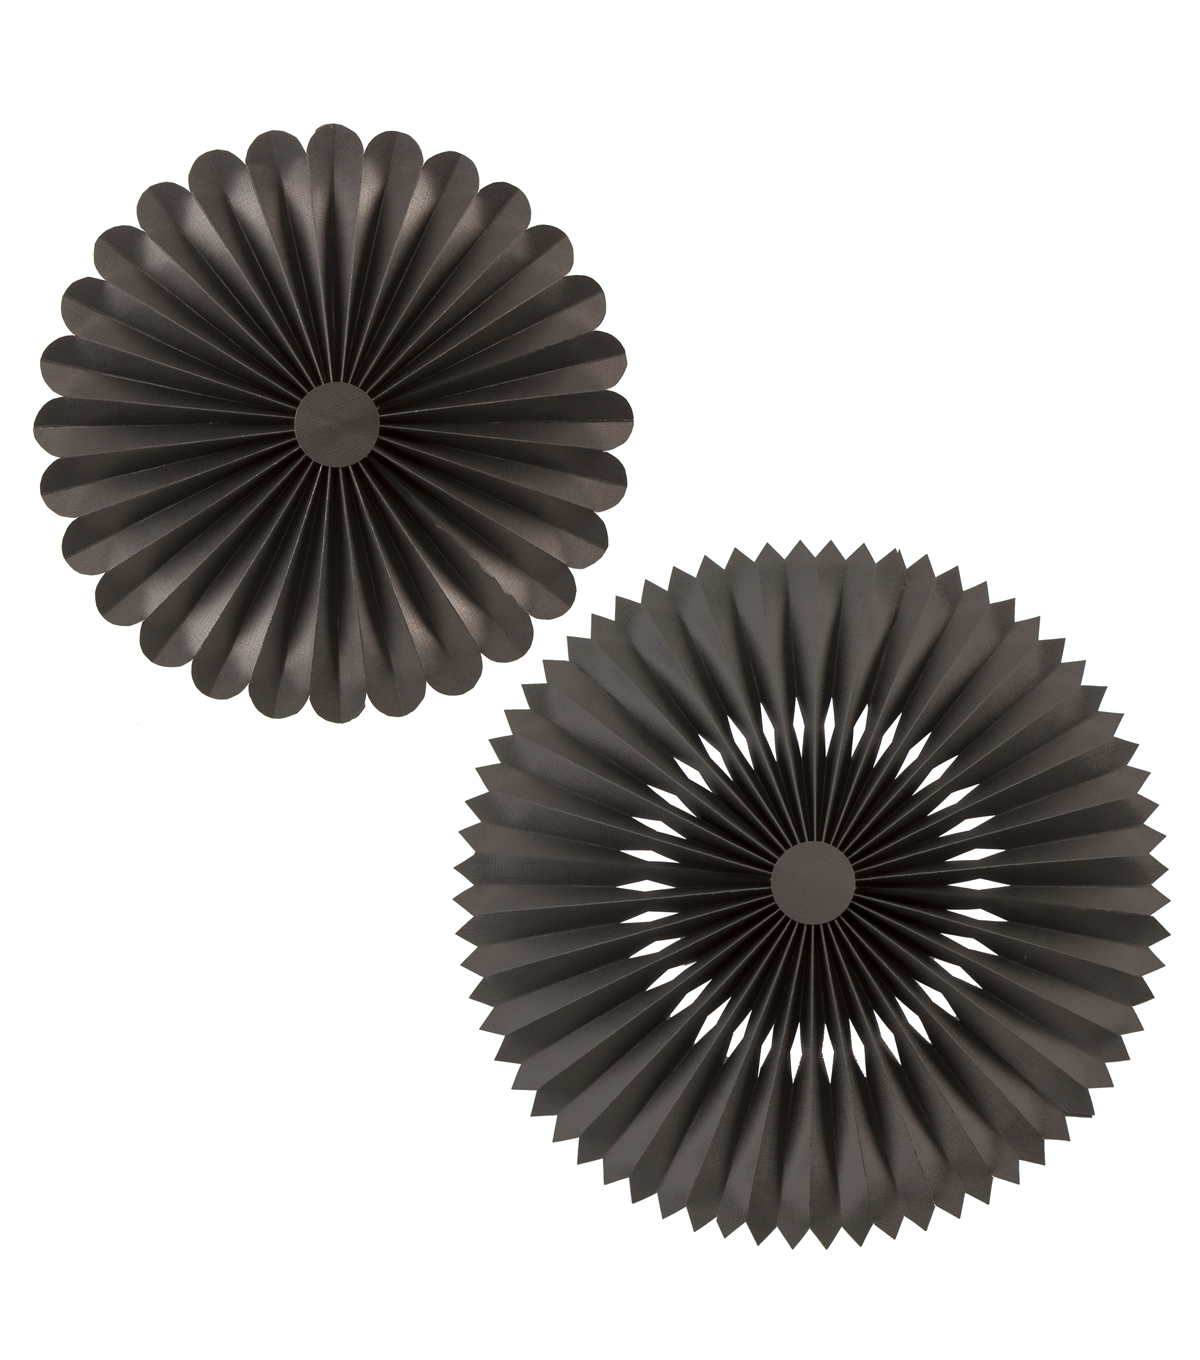 Mixers - Soot Black Rosettes, 2pcs.